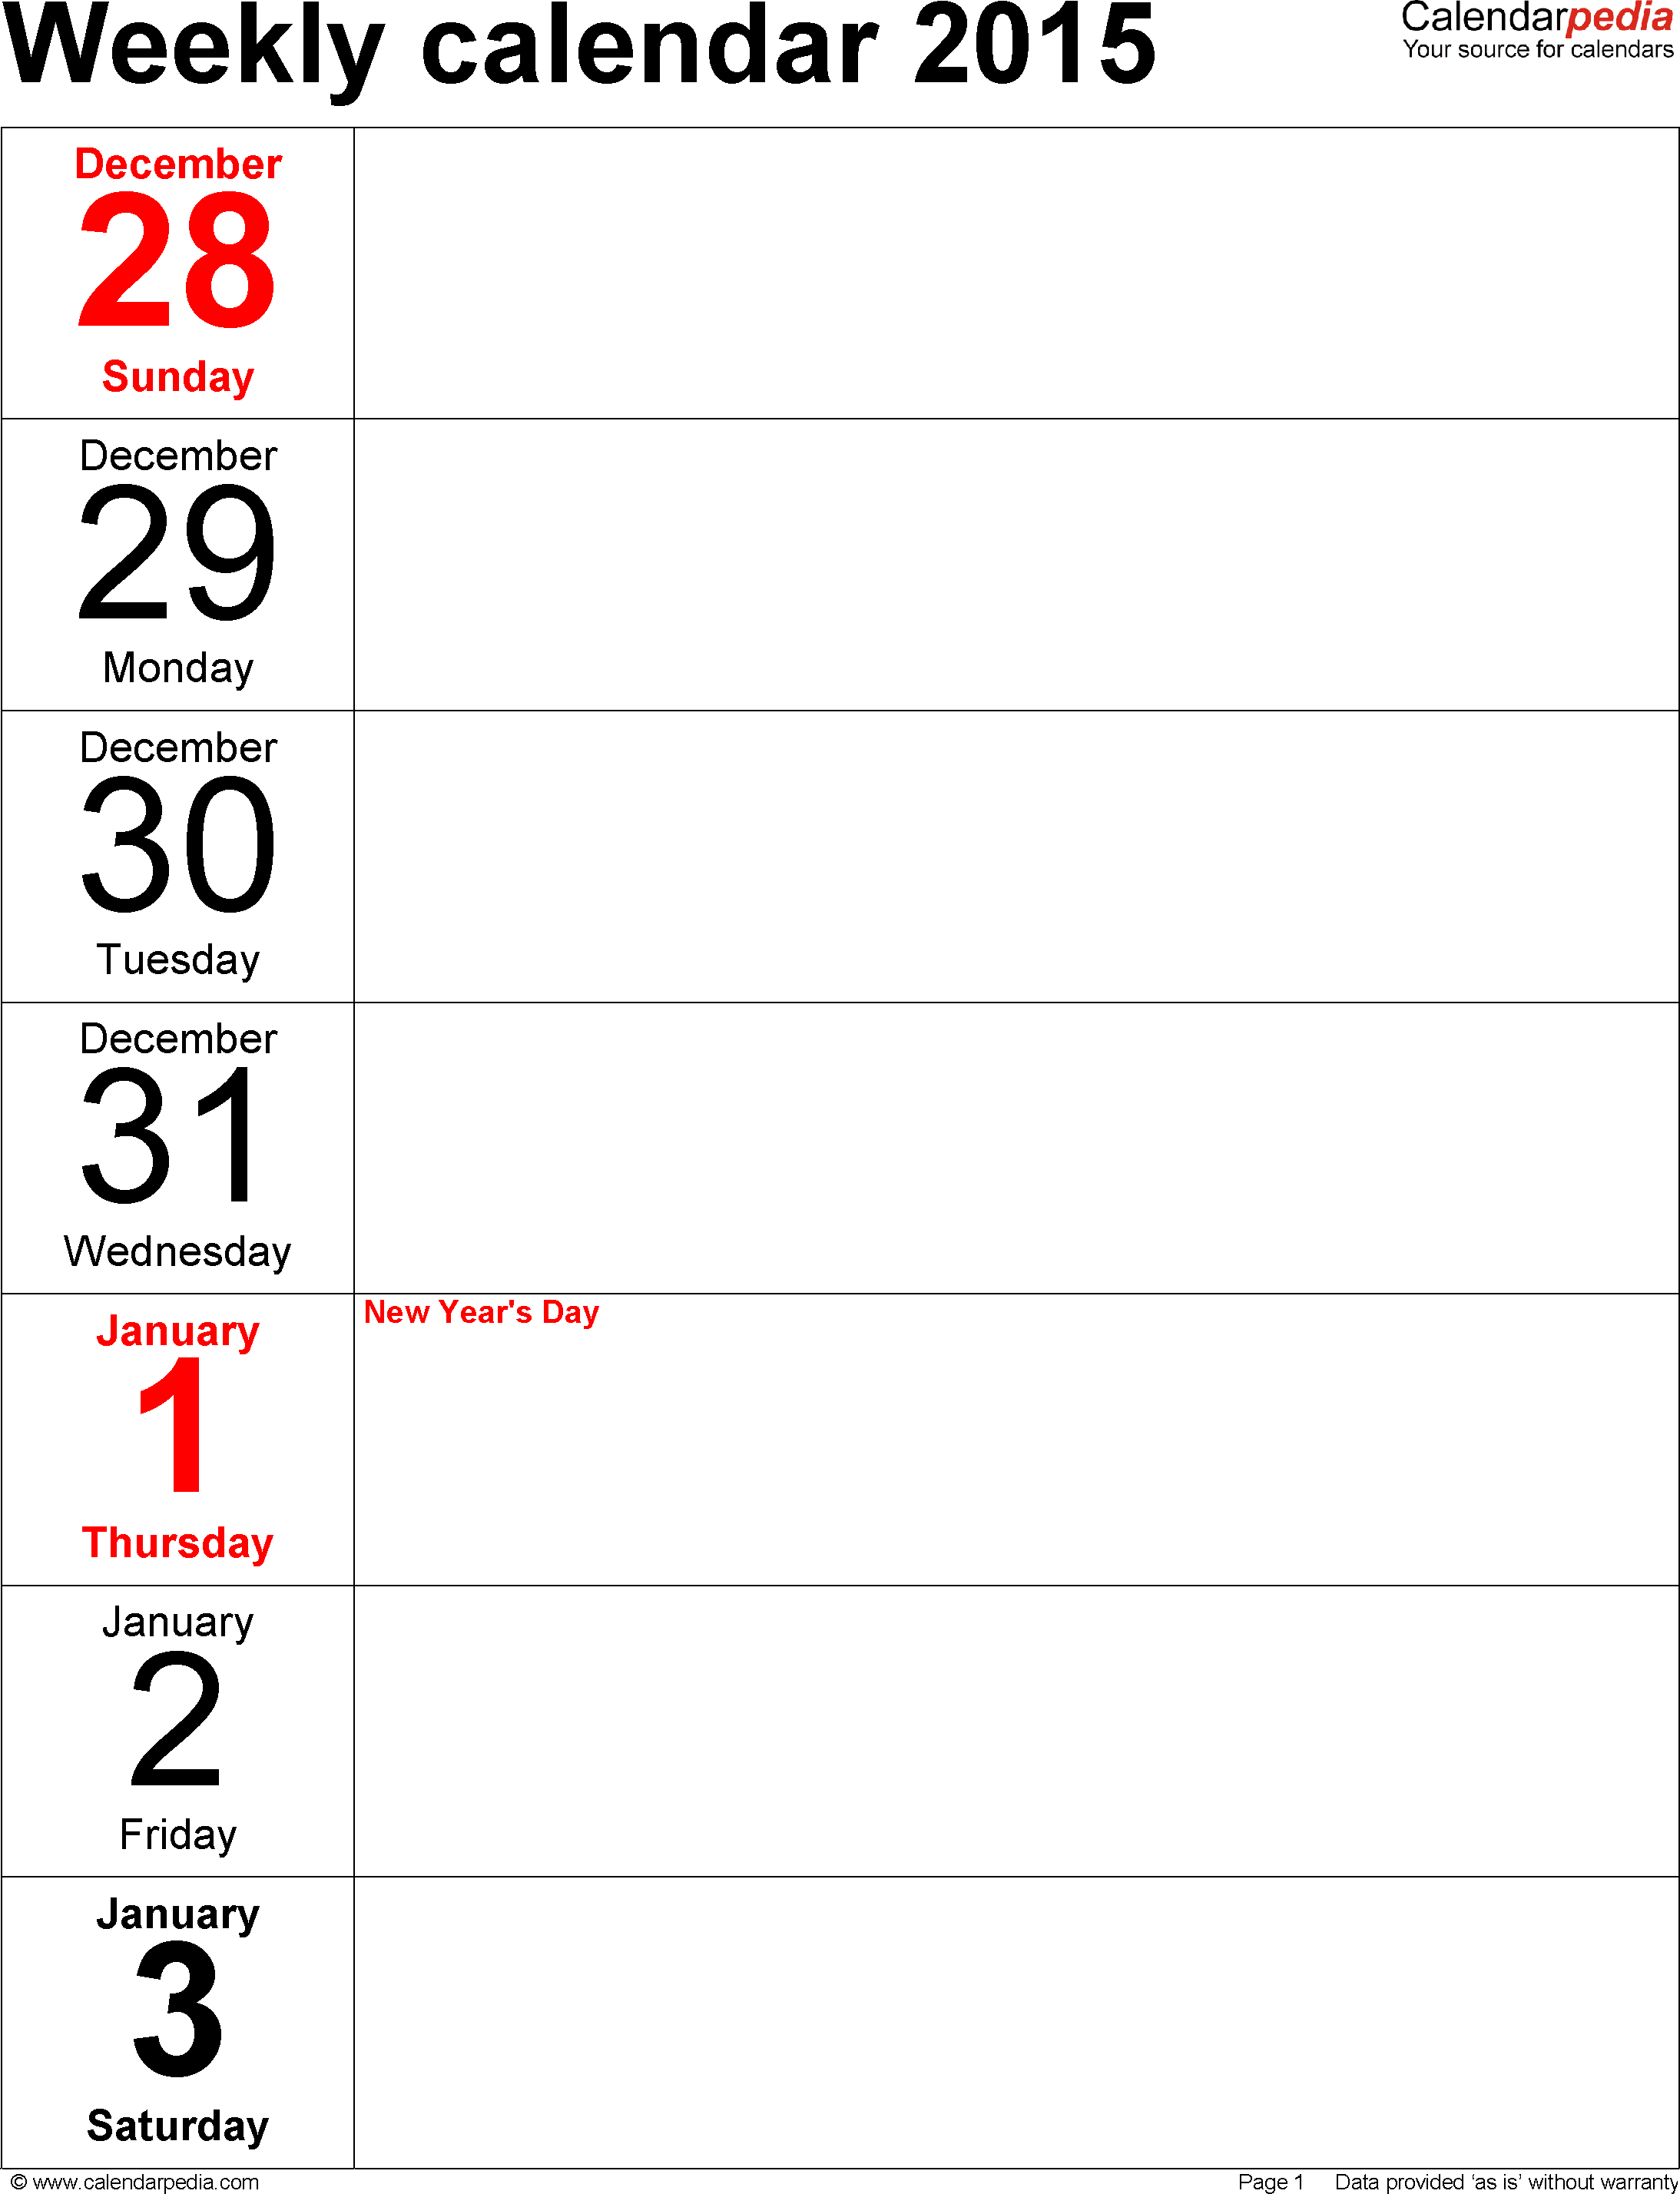 Weekly Calendar 2015 For Pdf - 12 Free Printable Templates - Free Printable Diary 2015